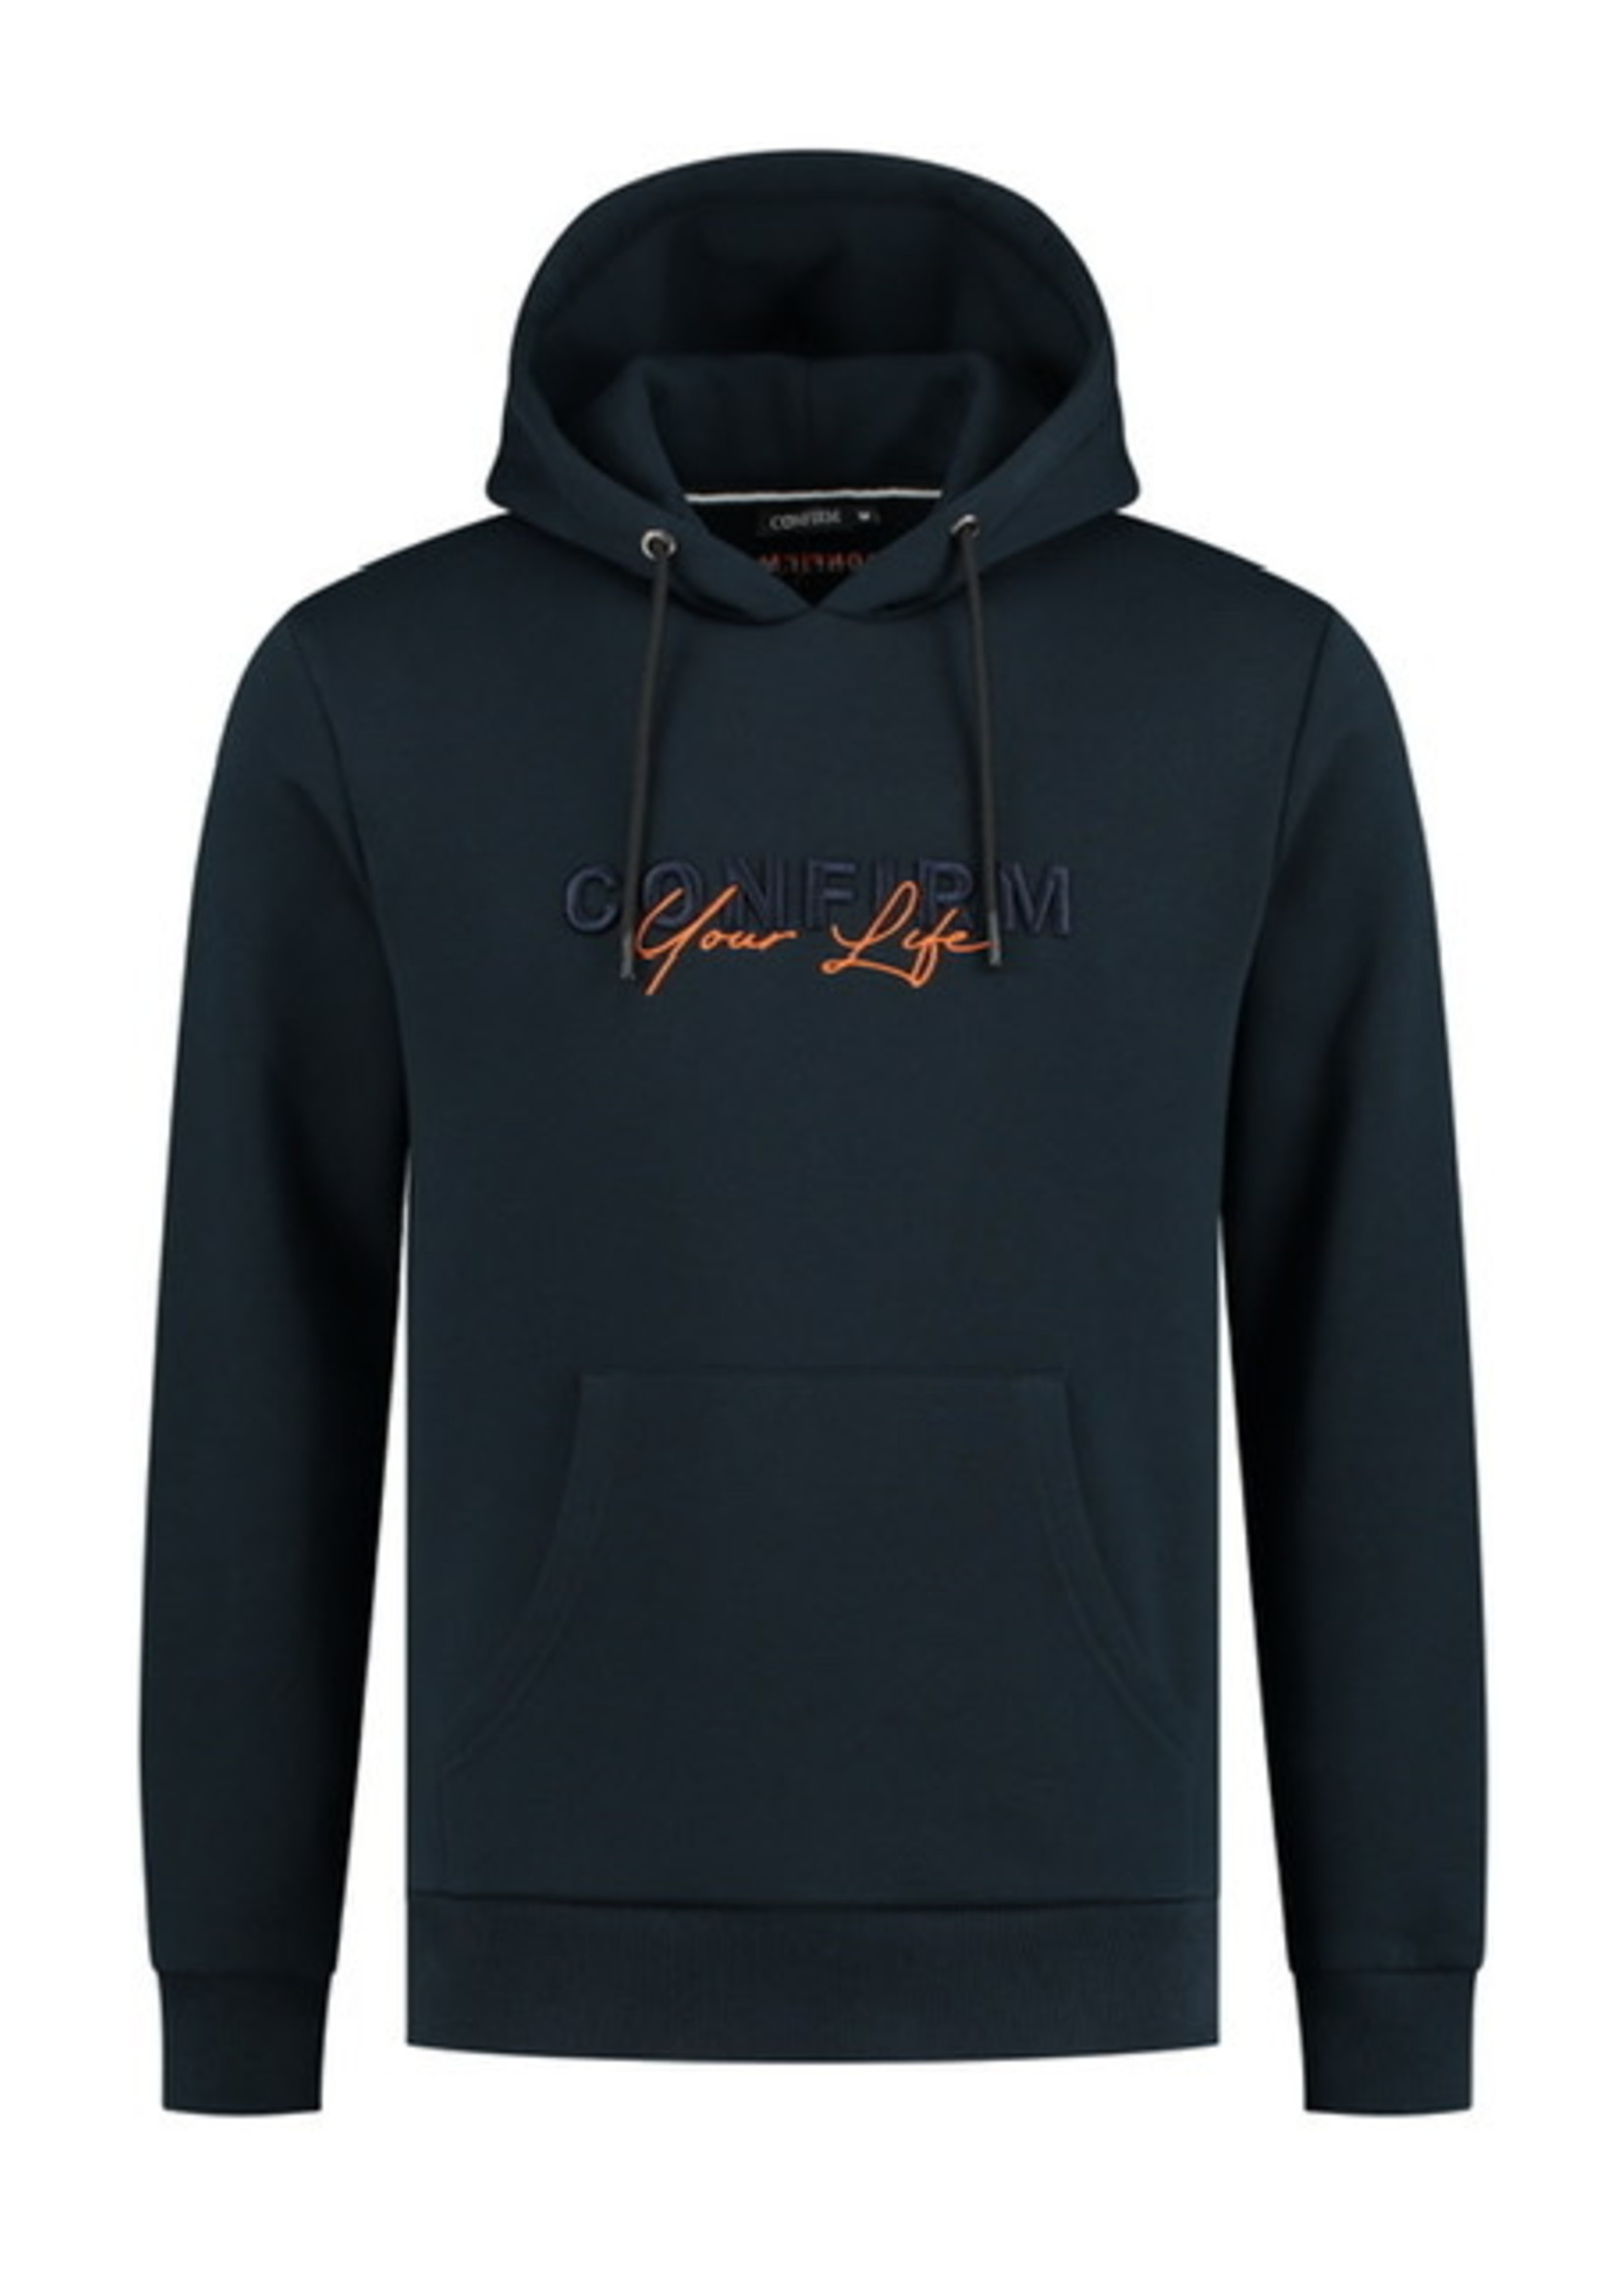 Hoodie Confirm your life - navy